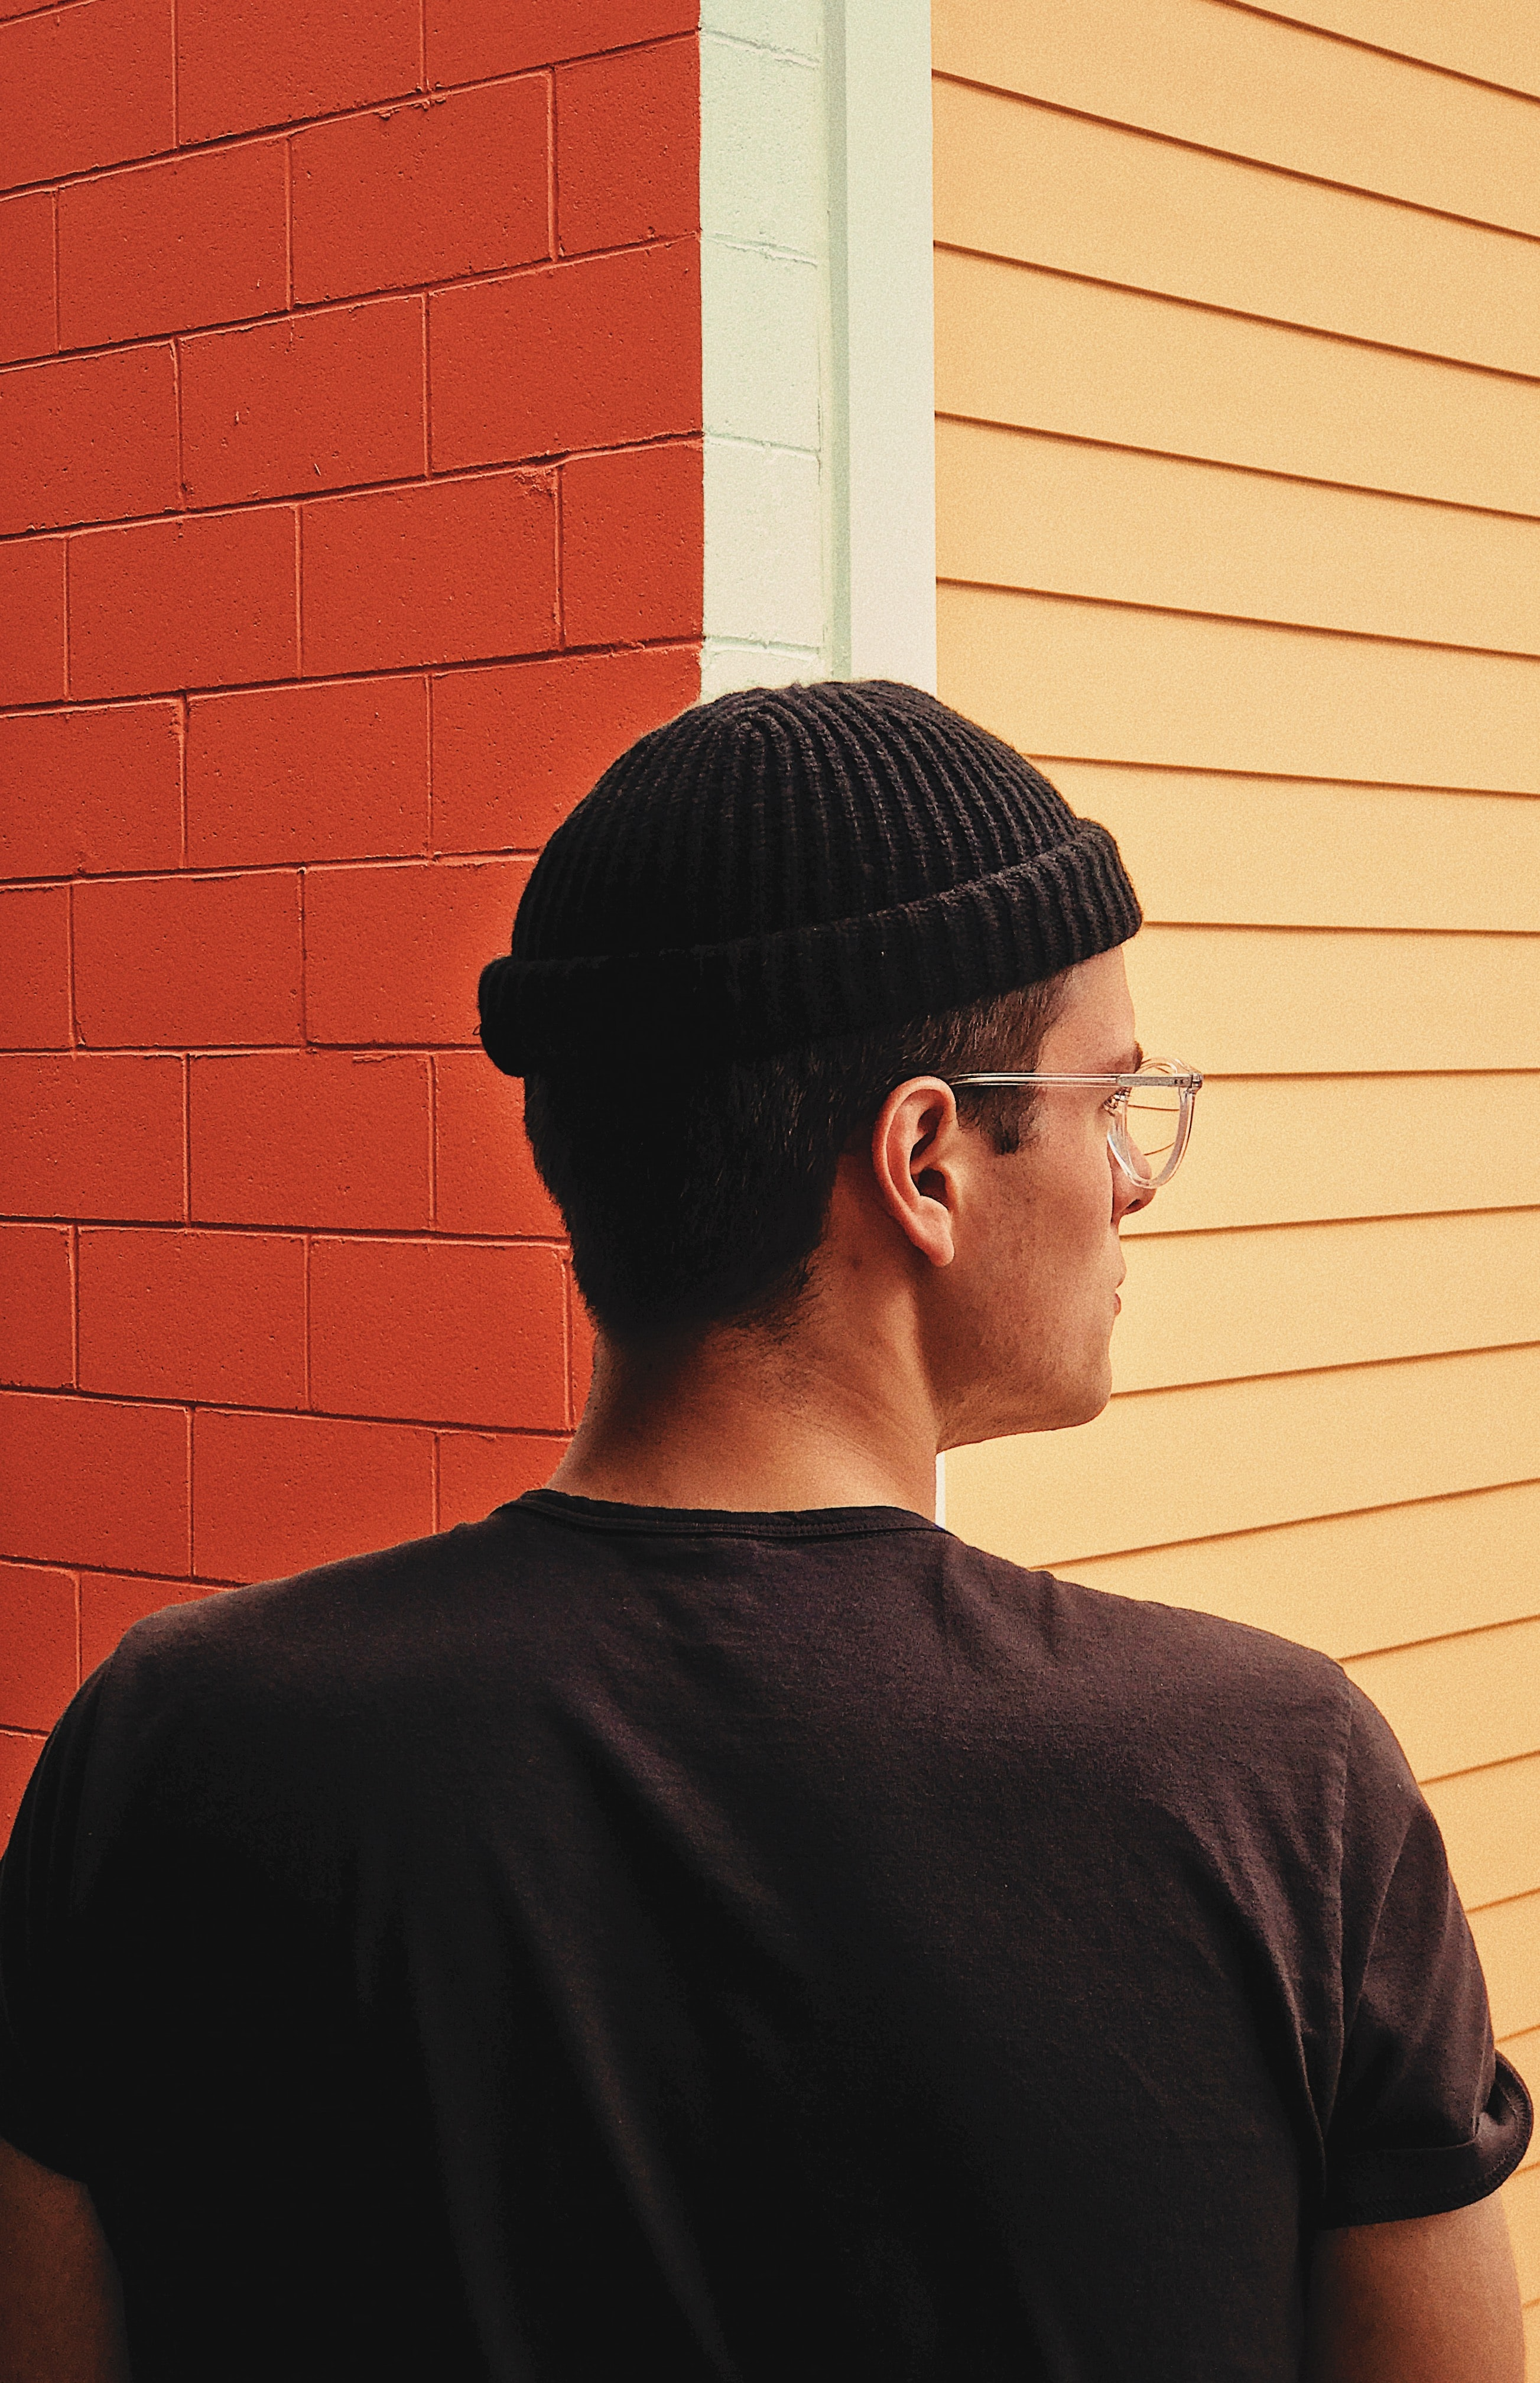 A mixed race mal wearing glasses, looking to the right while standing in front of a building corner.